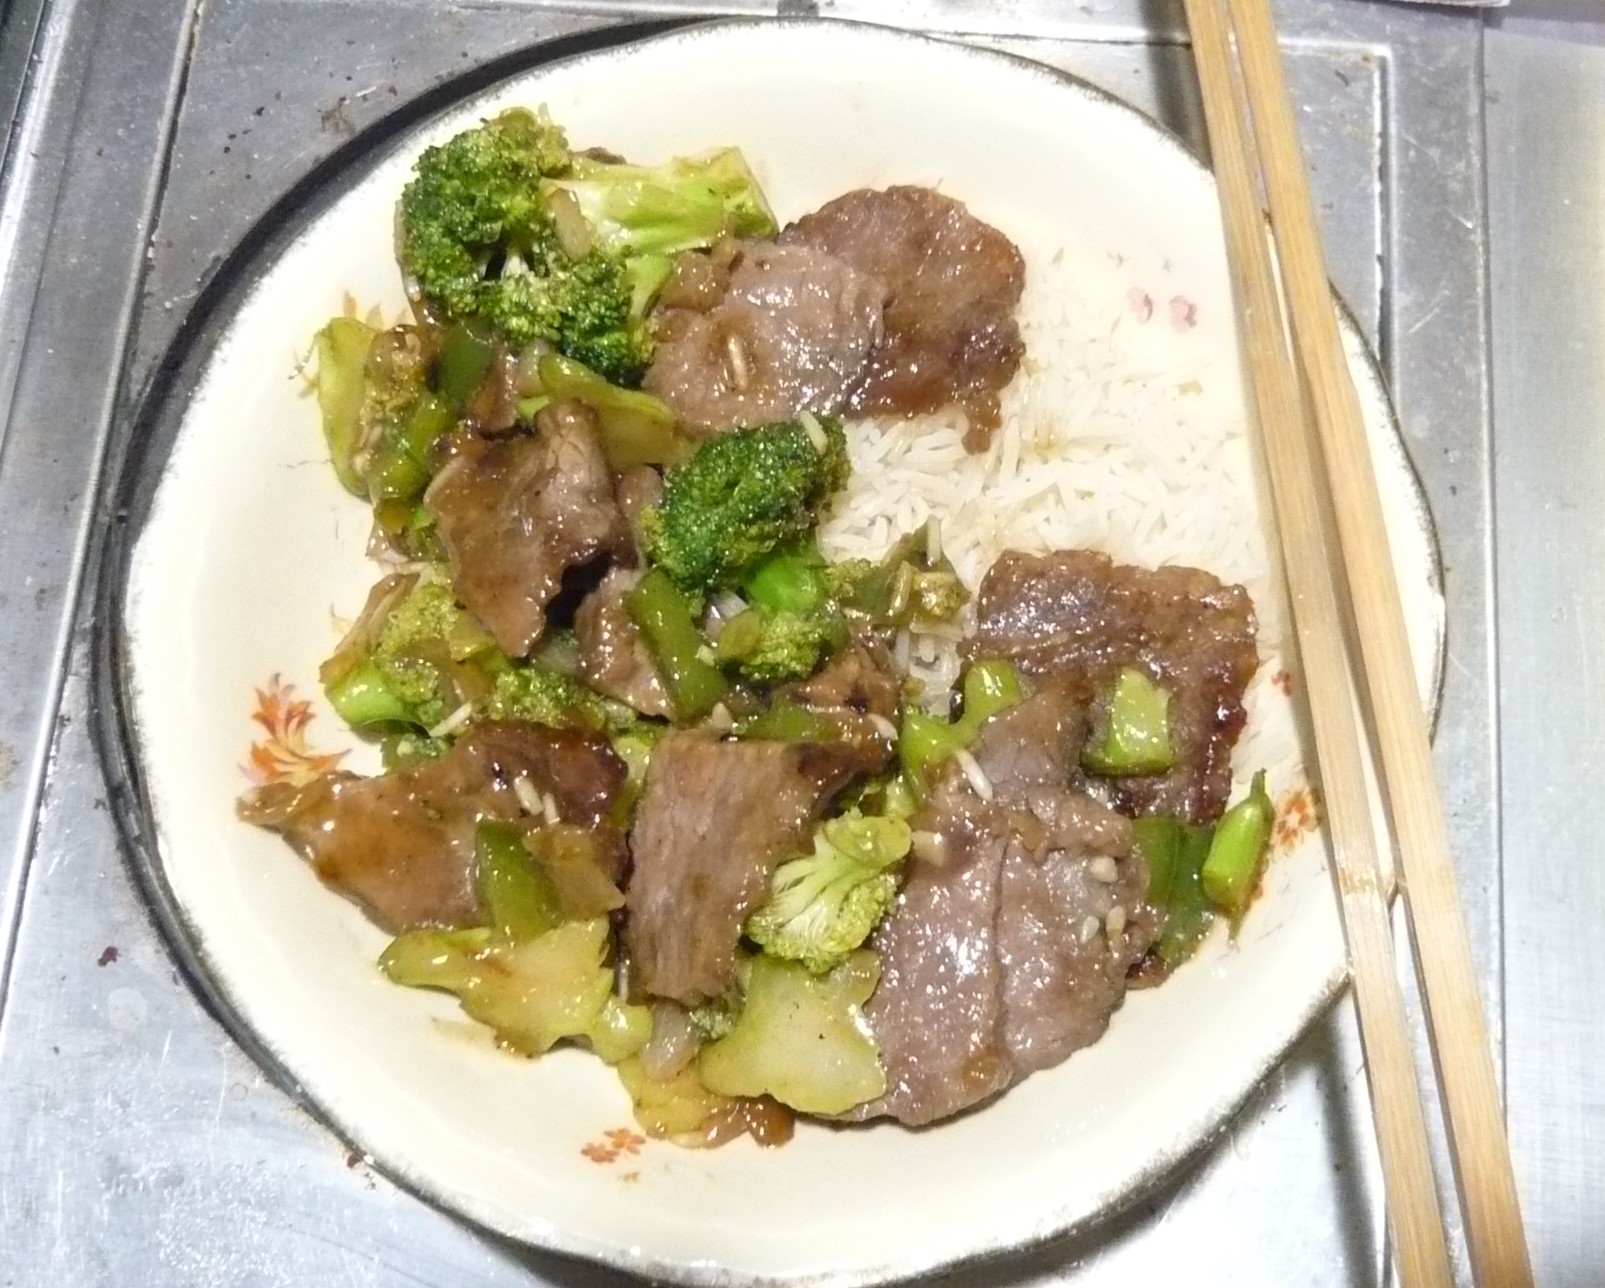 Fun Karnal (Beef and Broccoli)